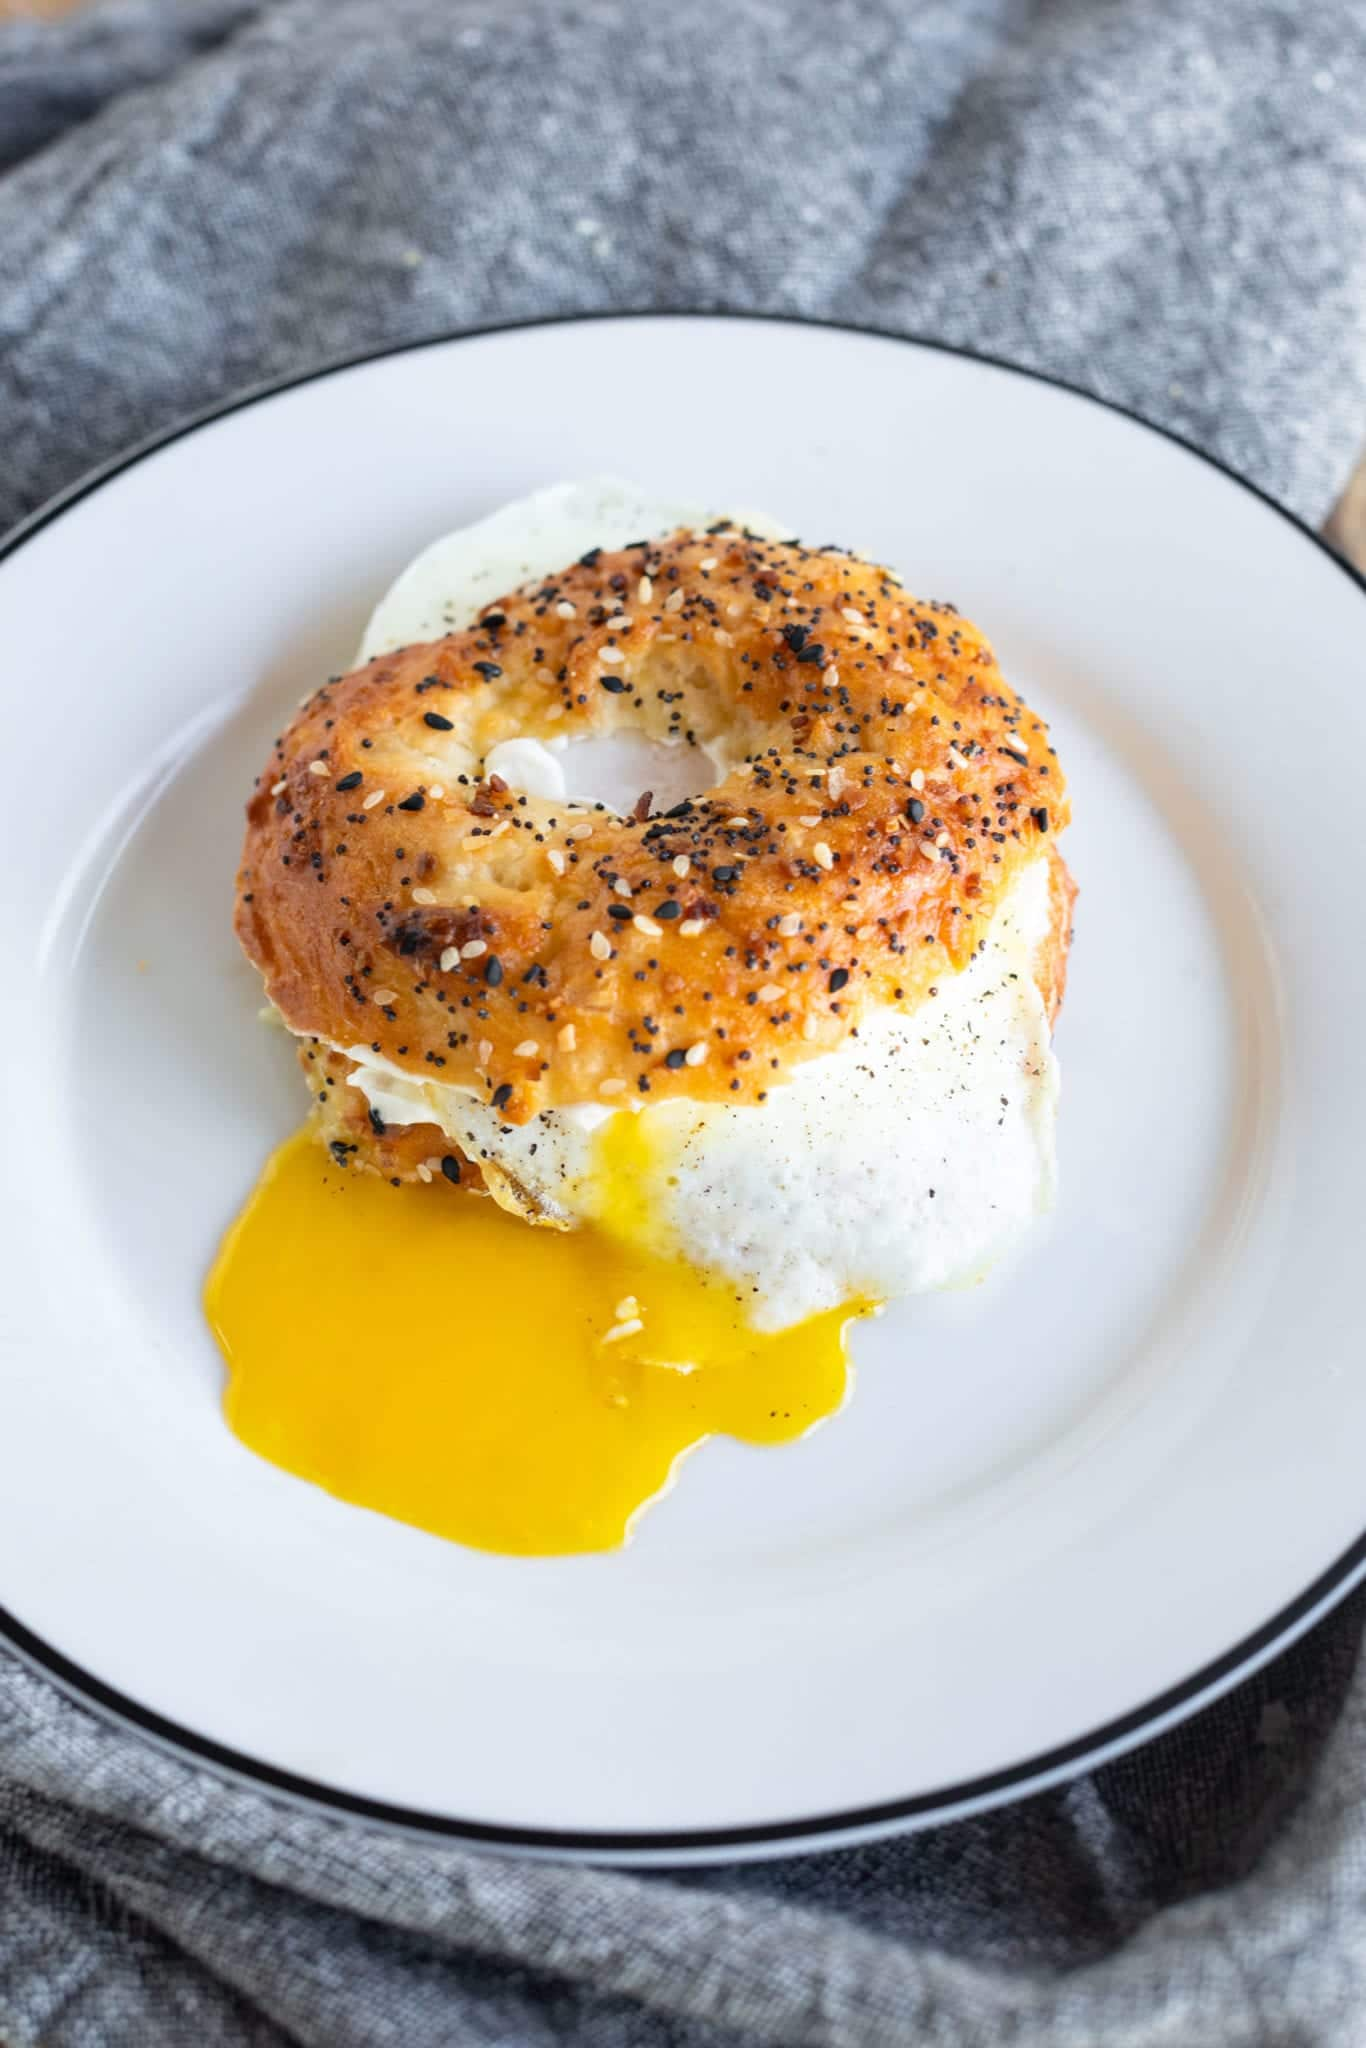 EASY Homemade Everything Bagels with cream cheese and over easy egg with runny yolk dripping down the side ready to eat! #breakfast #easyrecipes #homemadebagels #everythingbagels #weightwatchers